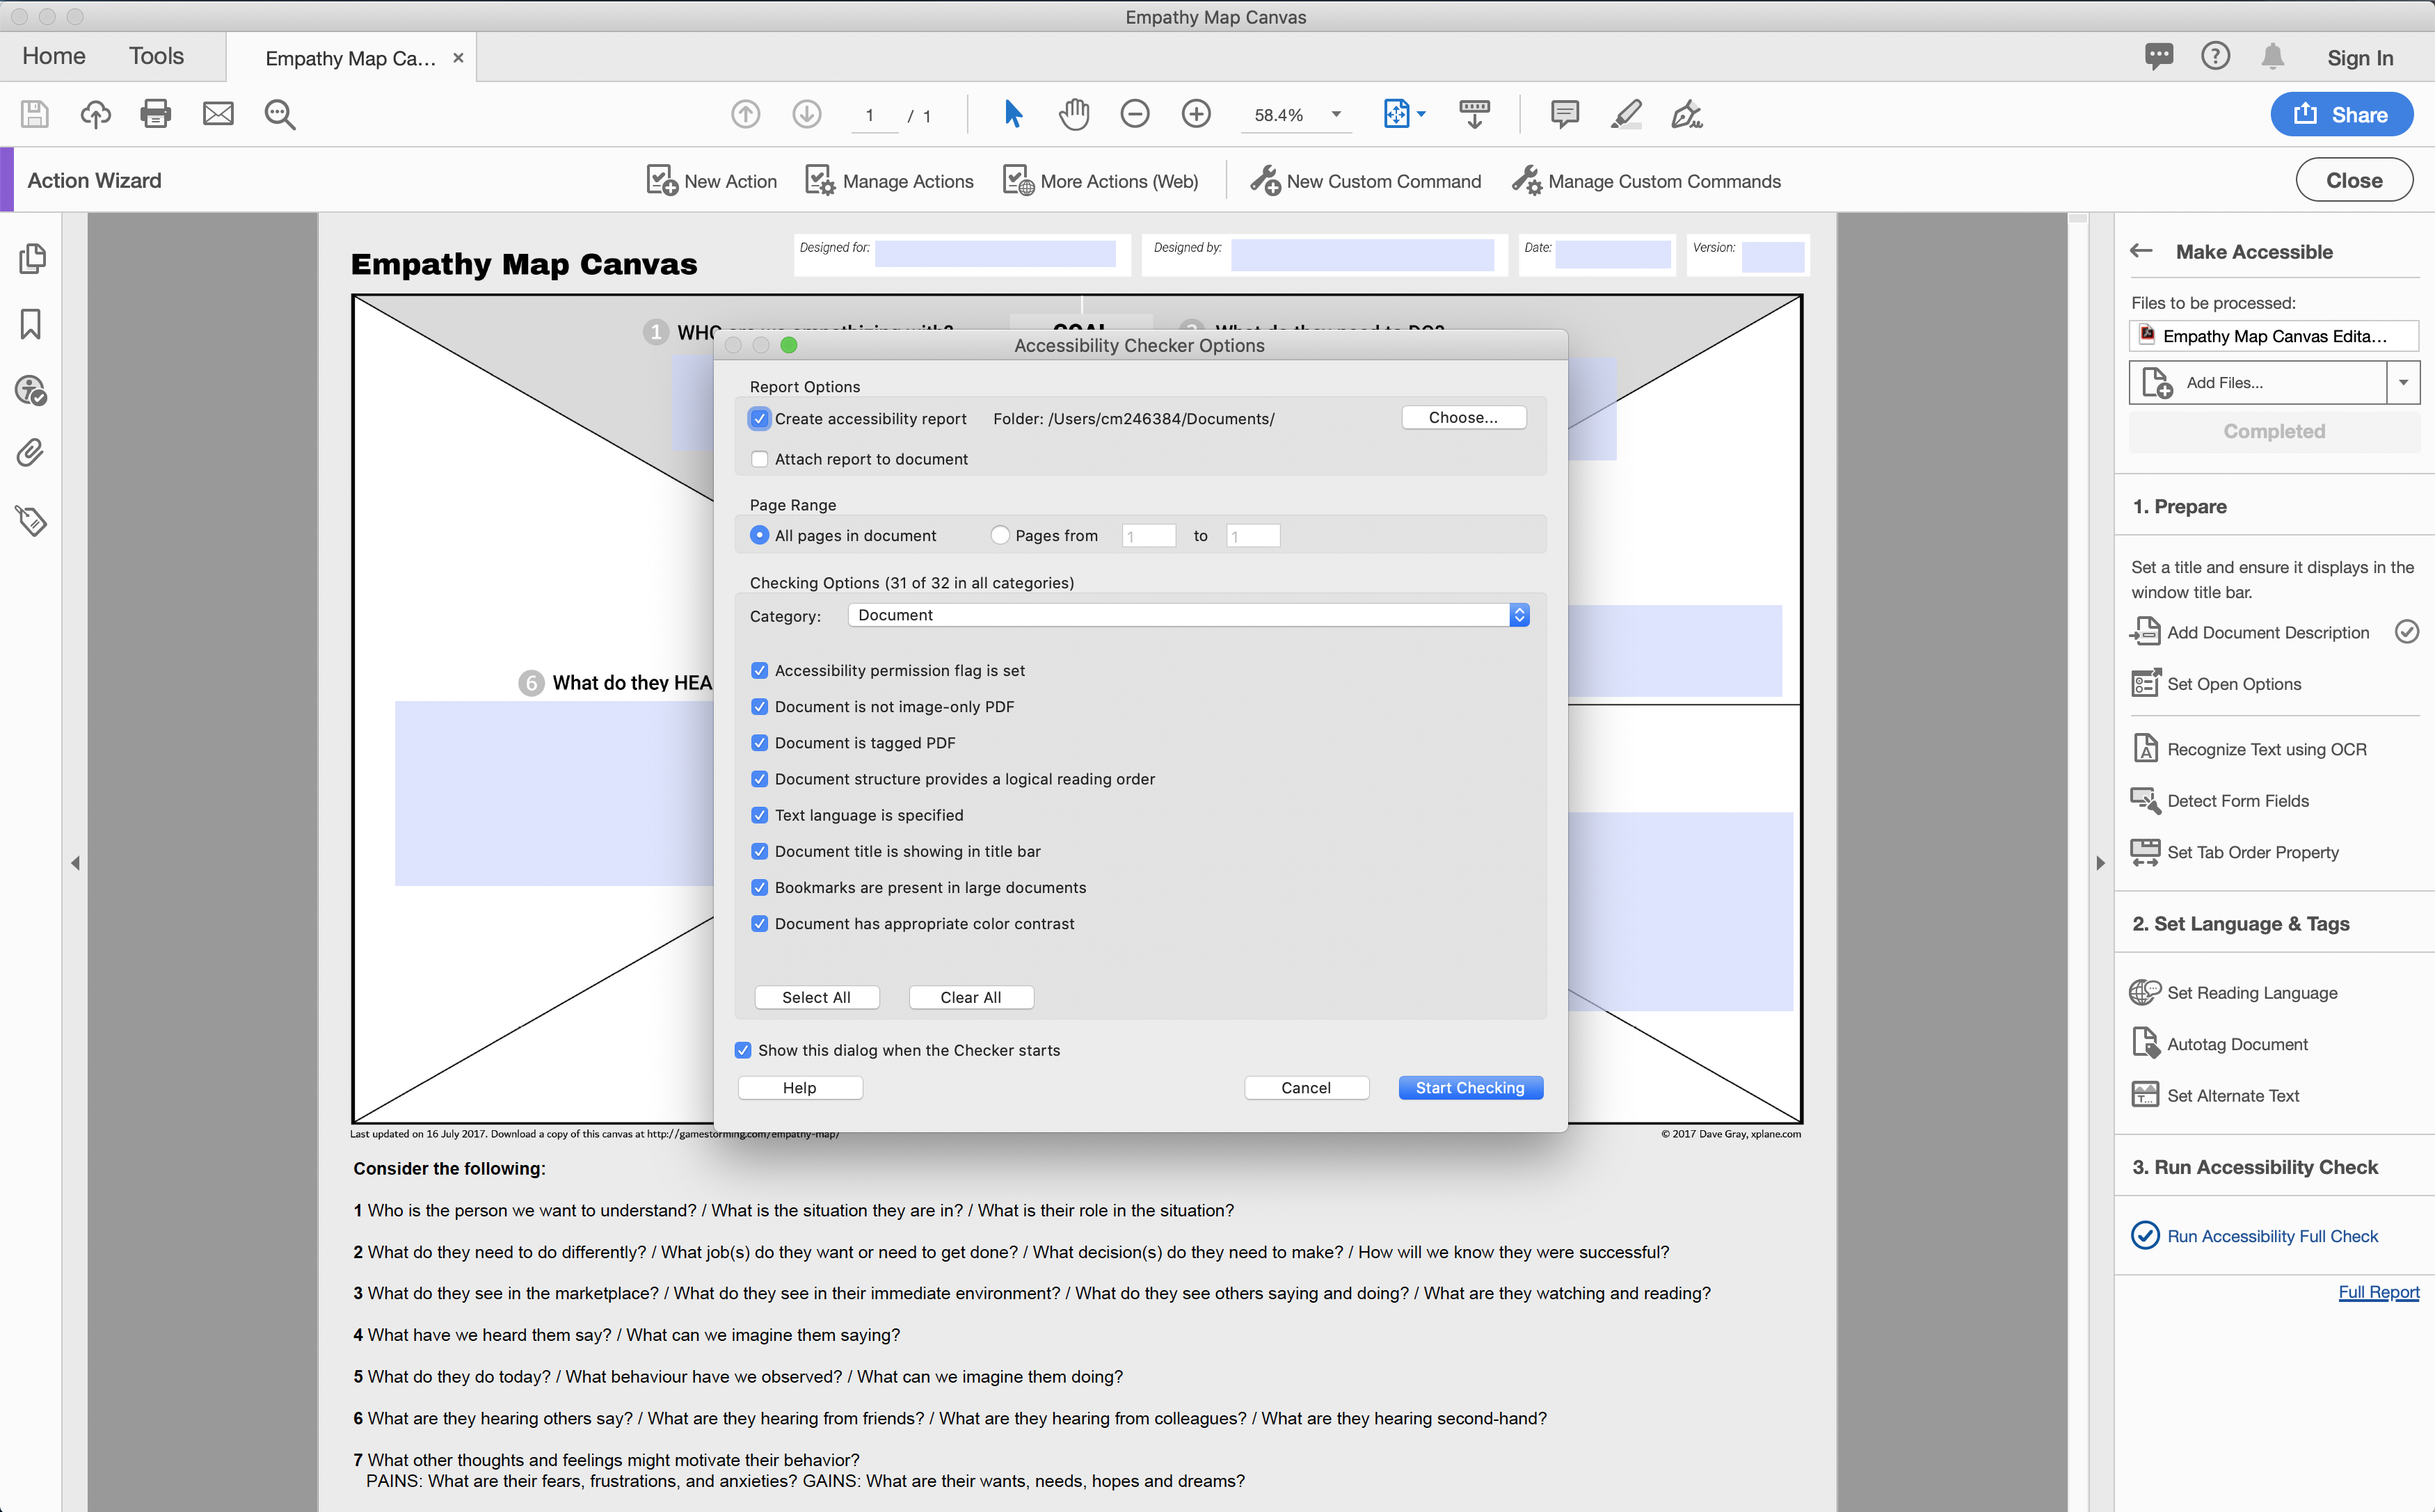 Pictorial representation of the Accessibility Checker Options dialogue box in Adobe Acrobat Pro